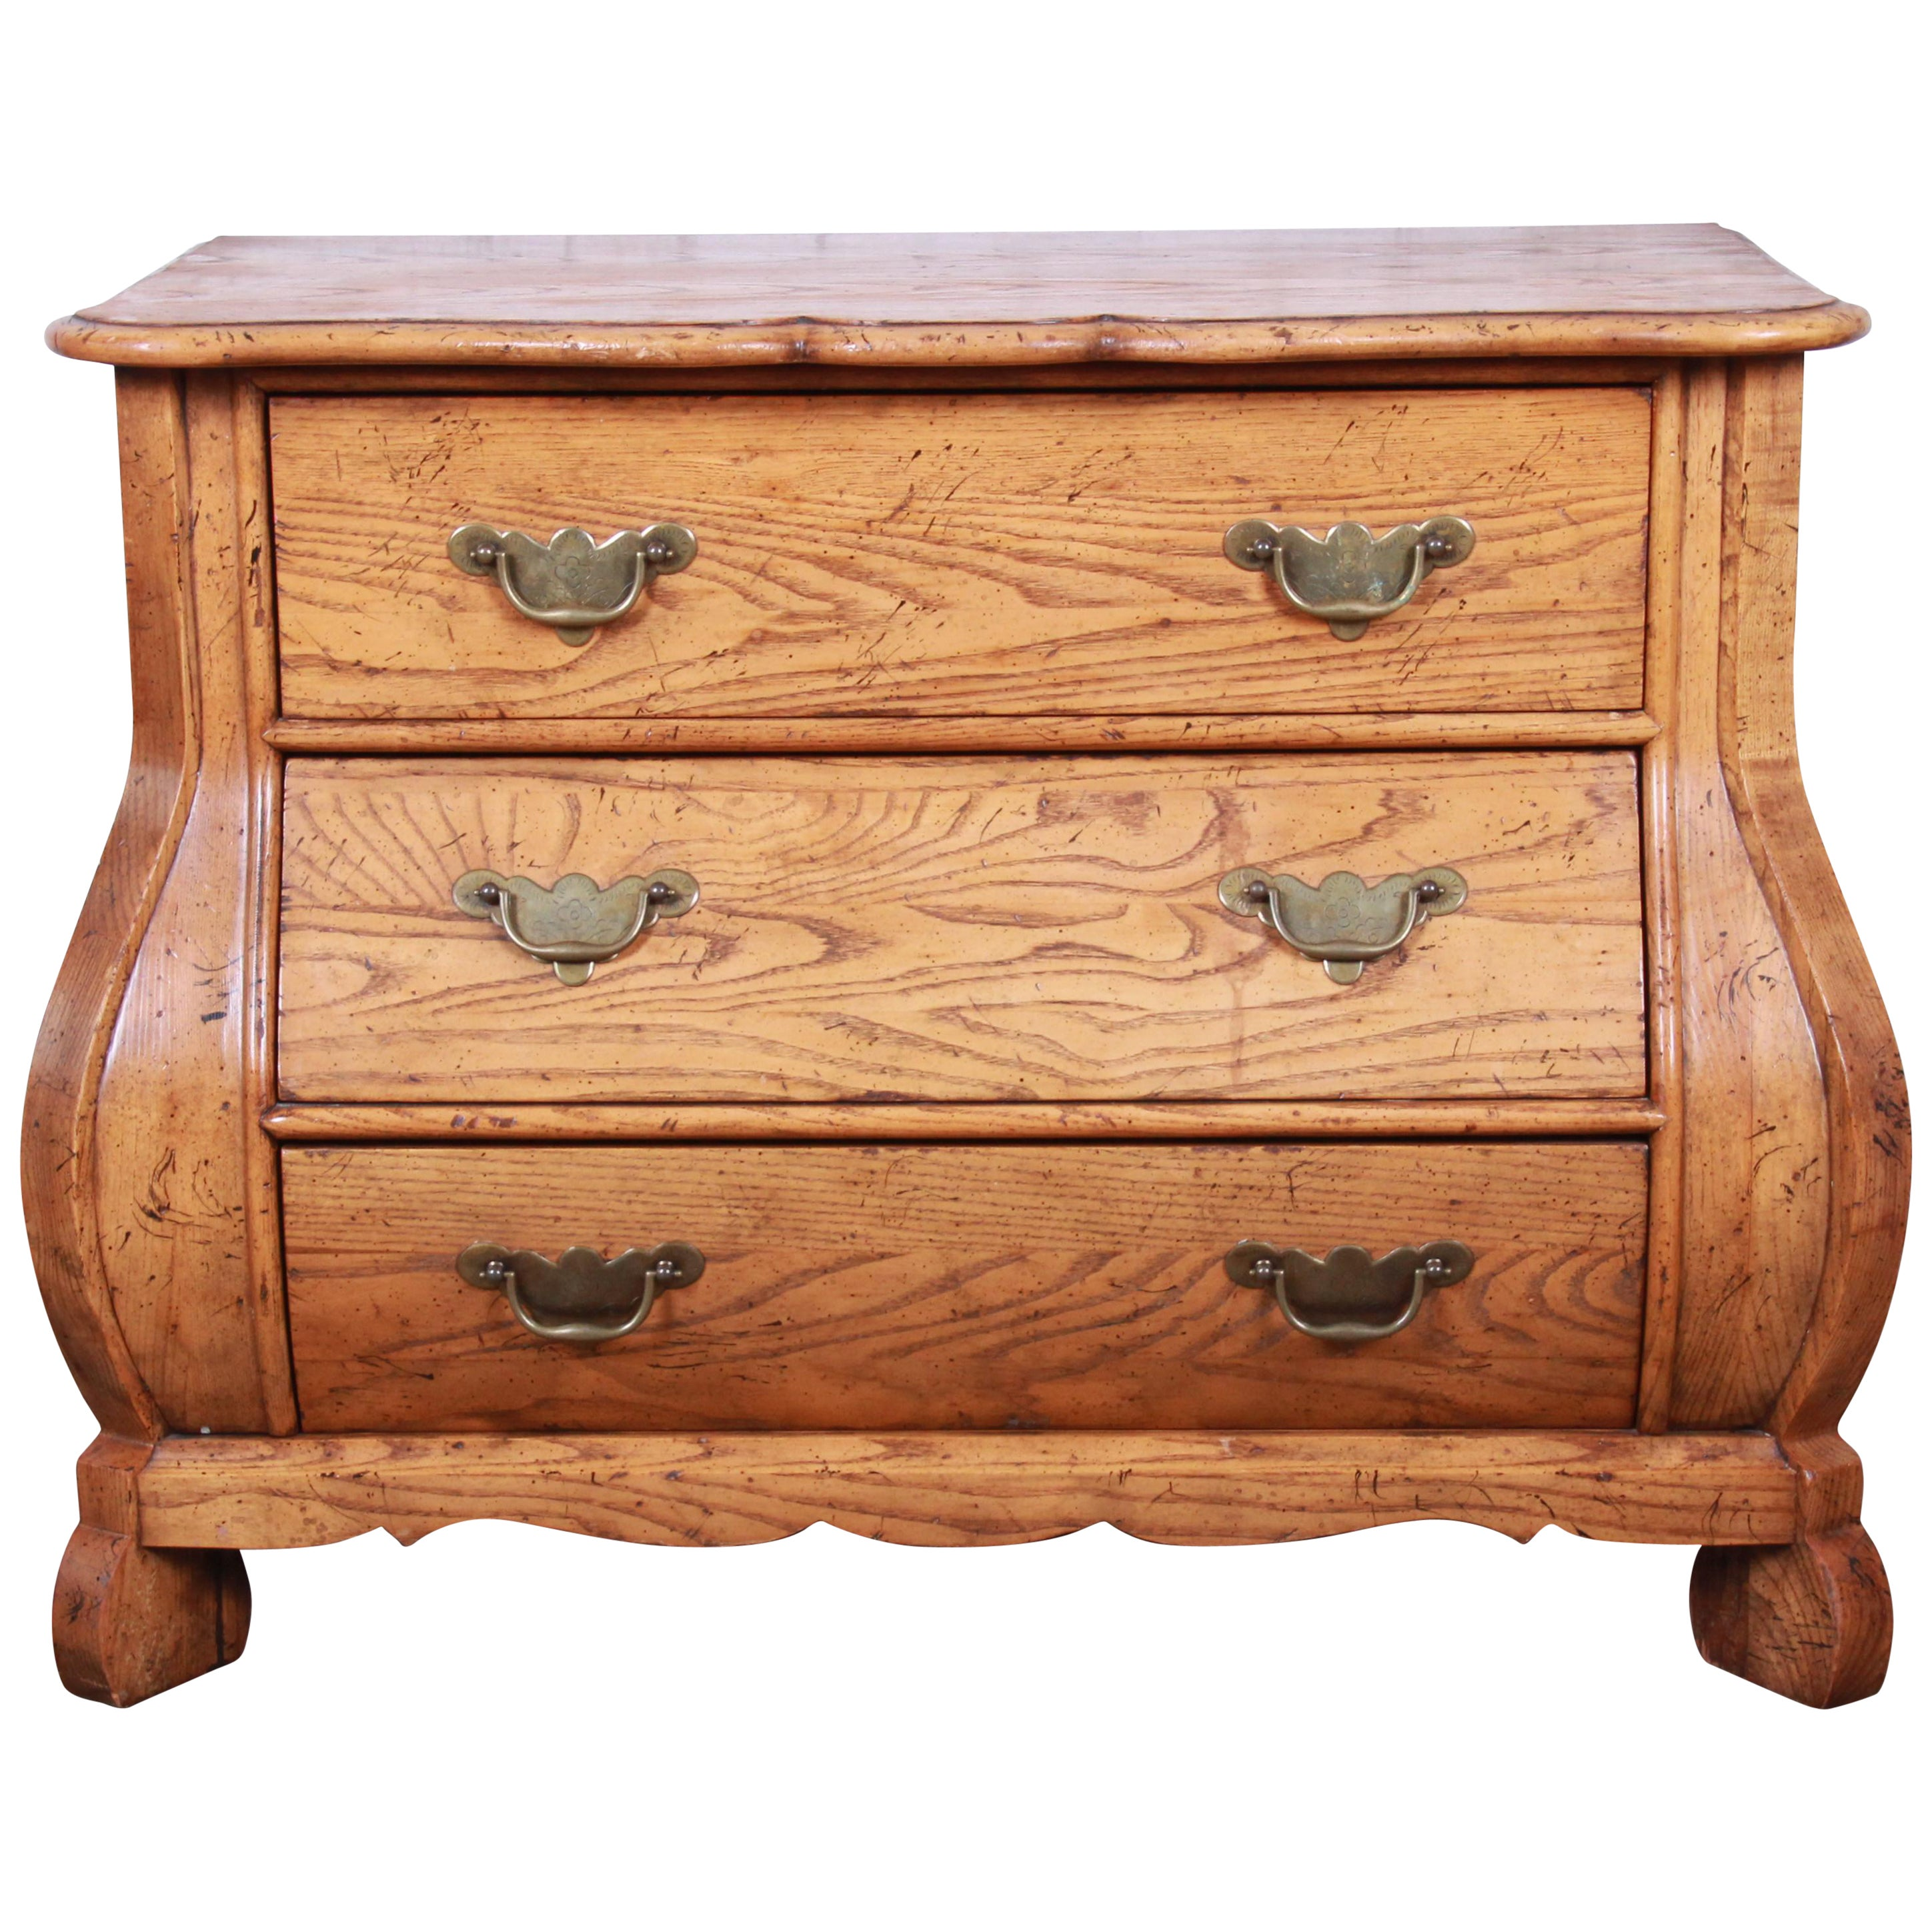 Baker furniture french provincial bombay chest of drawers for sale at 1stdibs